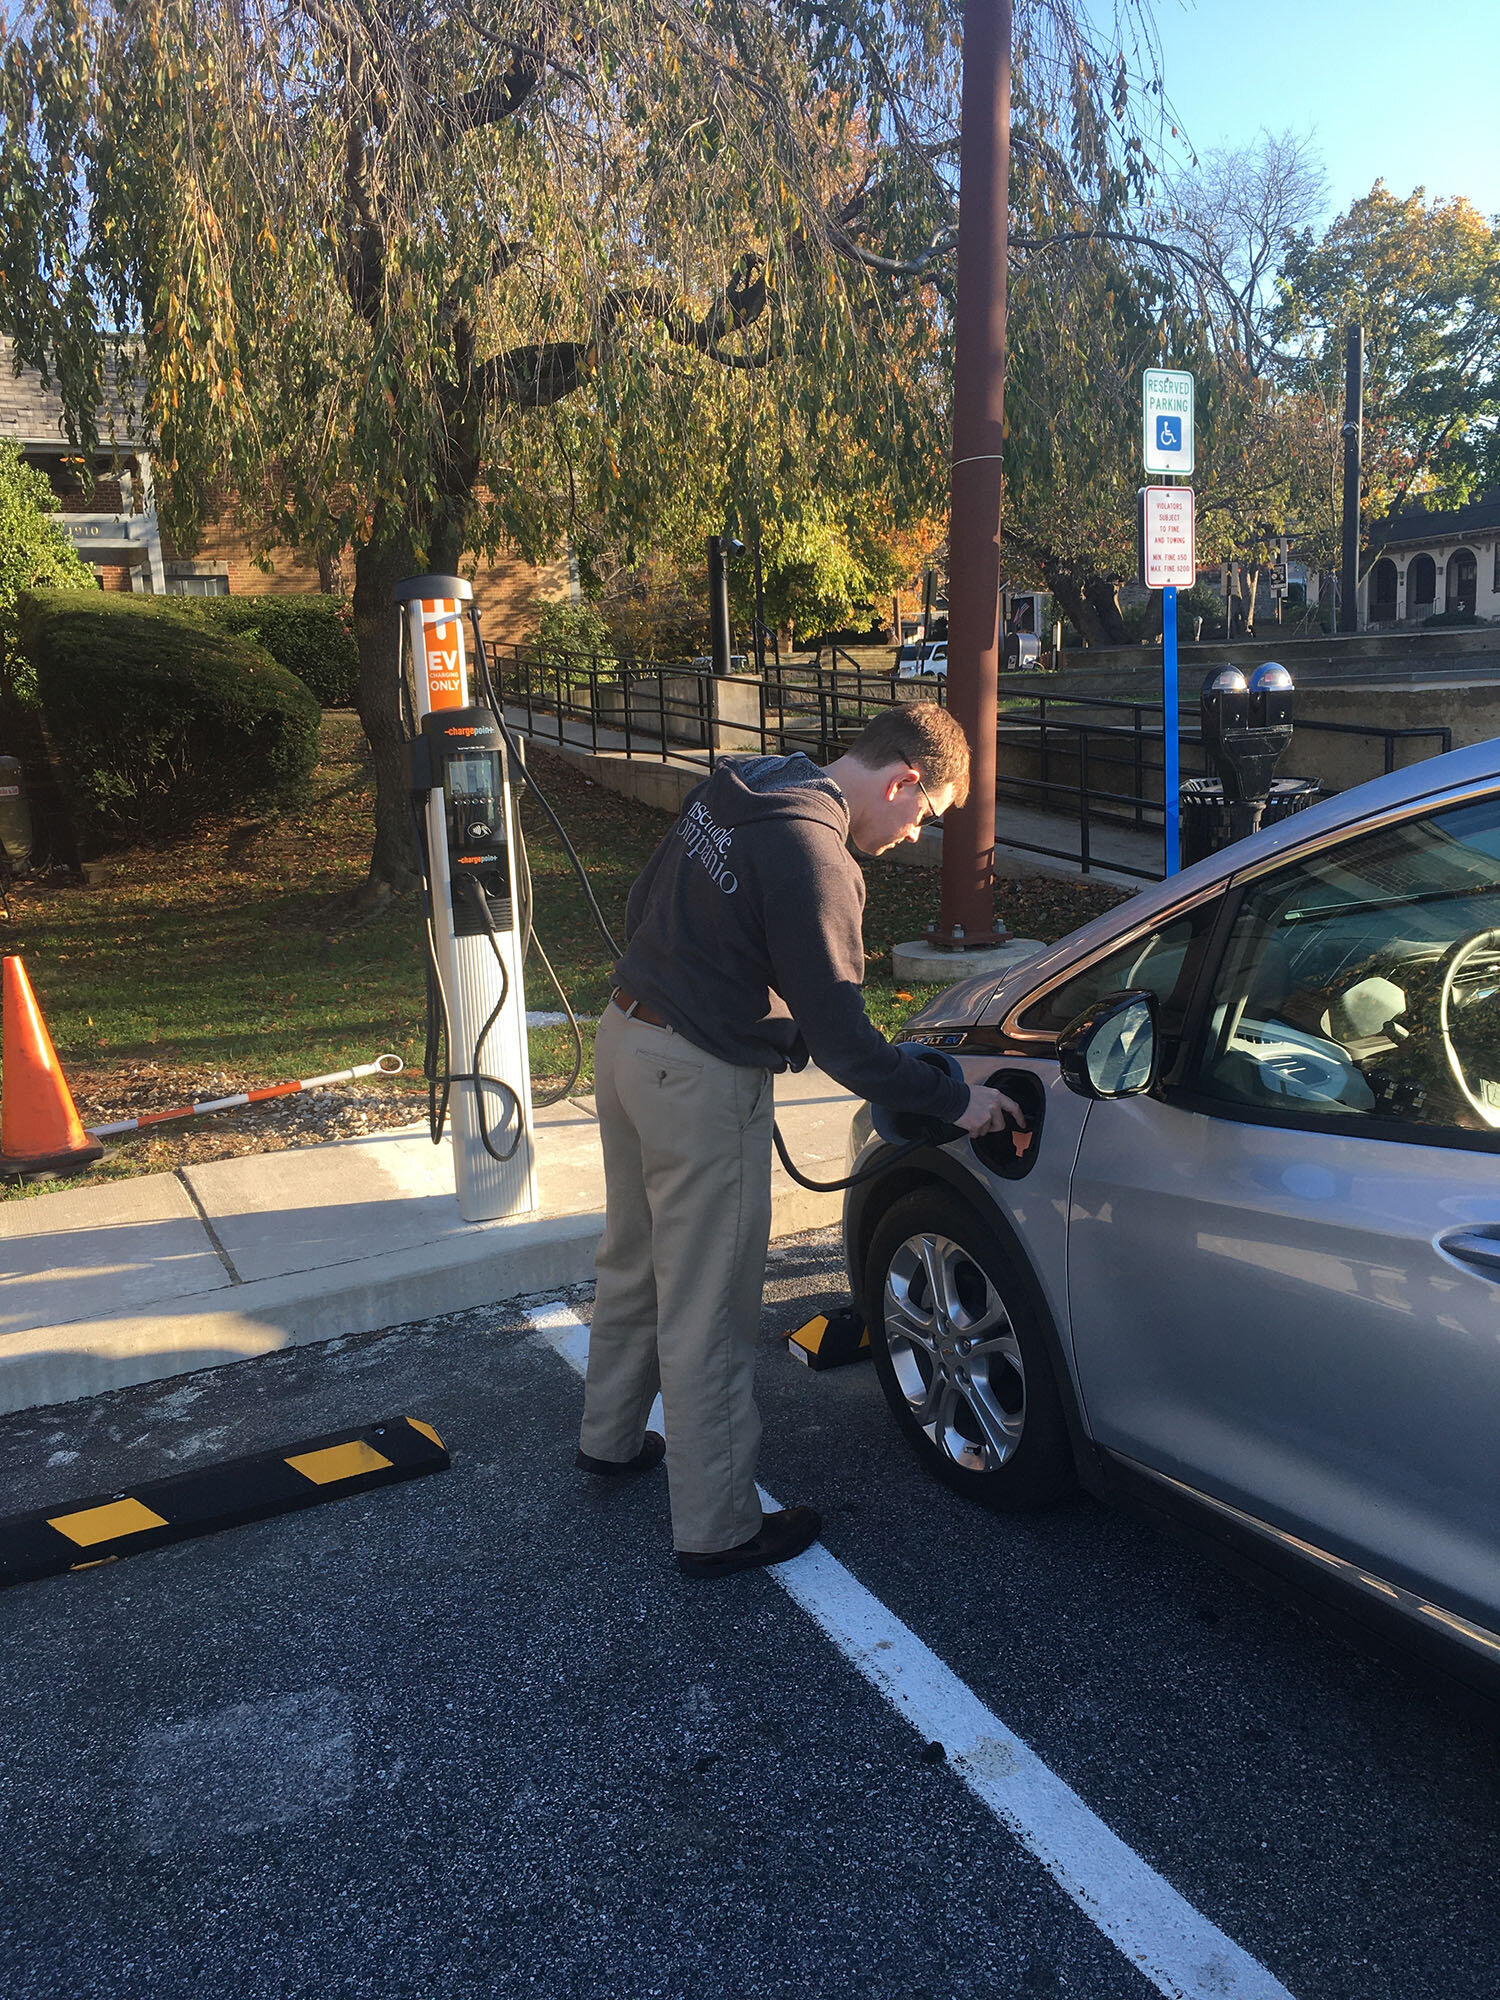 Michael Raffaele plugs in his Chevy Bolt at Swarthmore's new electric vehicle (EV) charging station in Central Park, adjacent to Borough Hall.  Photo by Kathleen Raffaele.